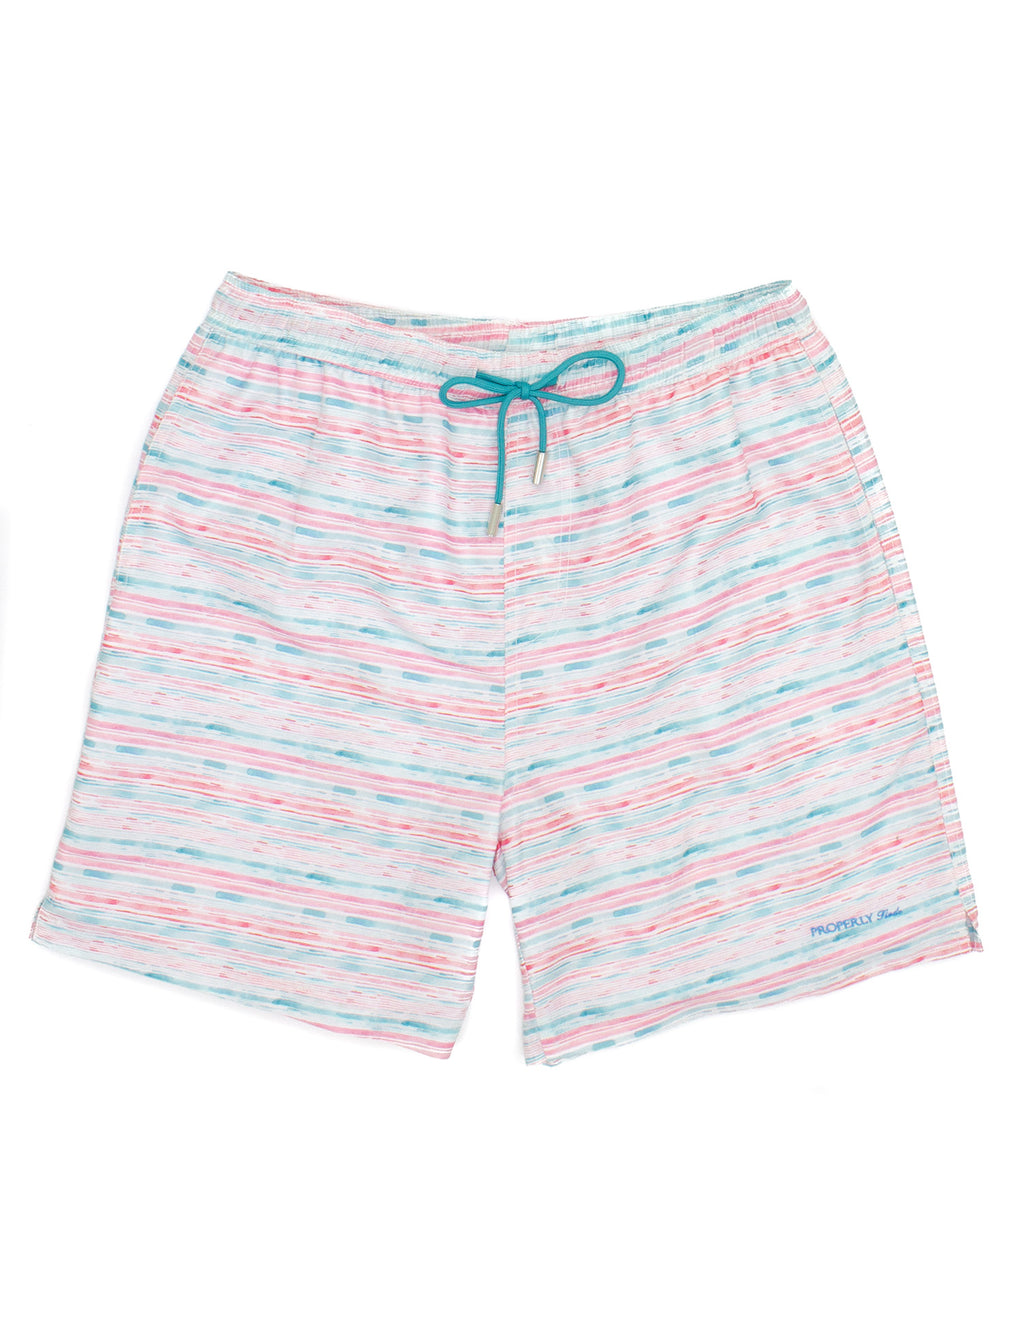 Properly Tied Boys Swim Trunks - Watercolor